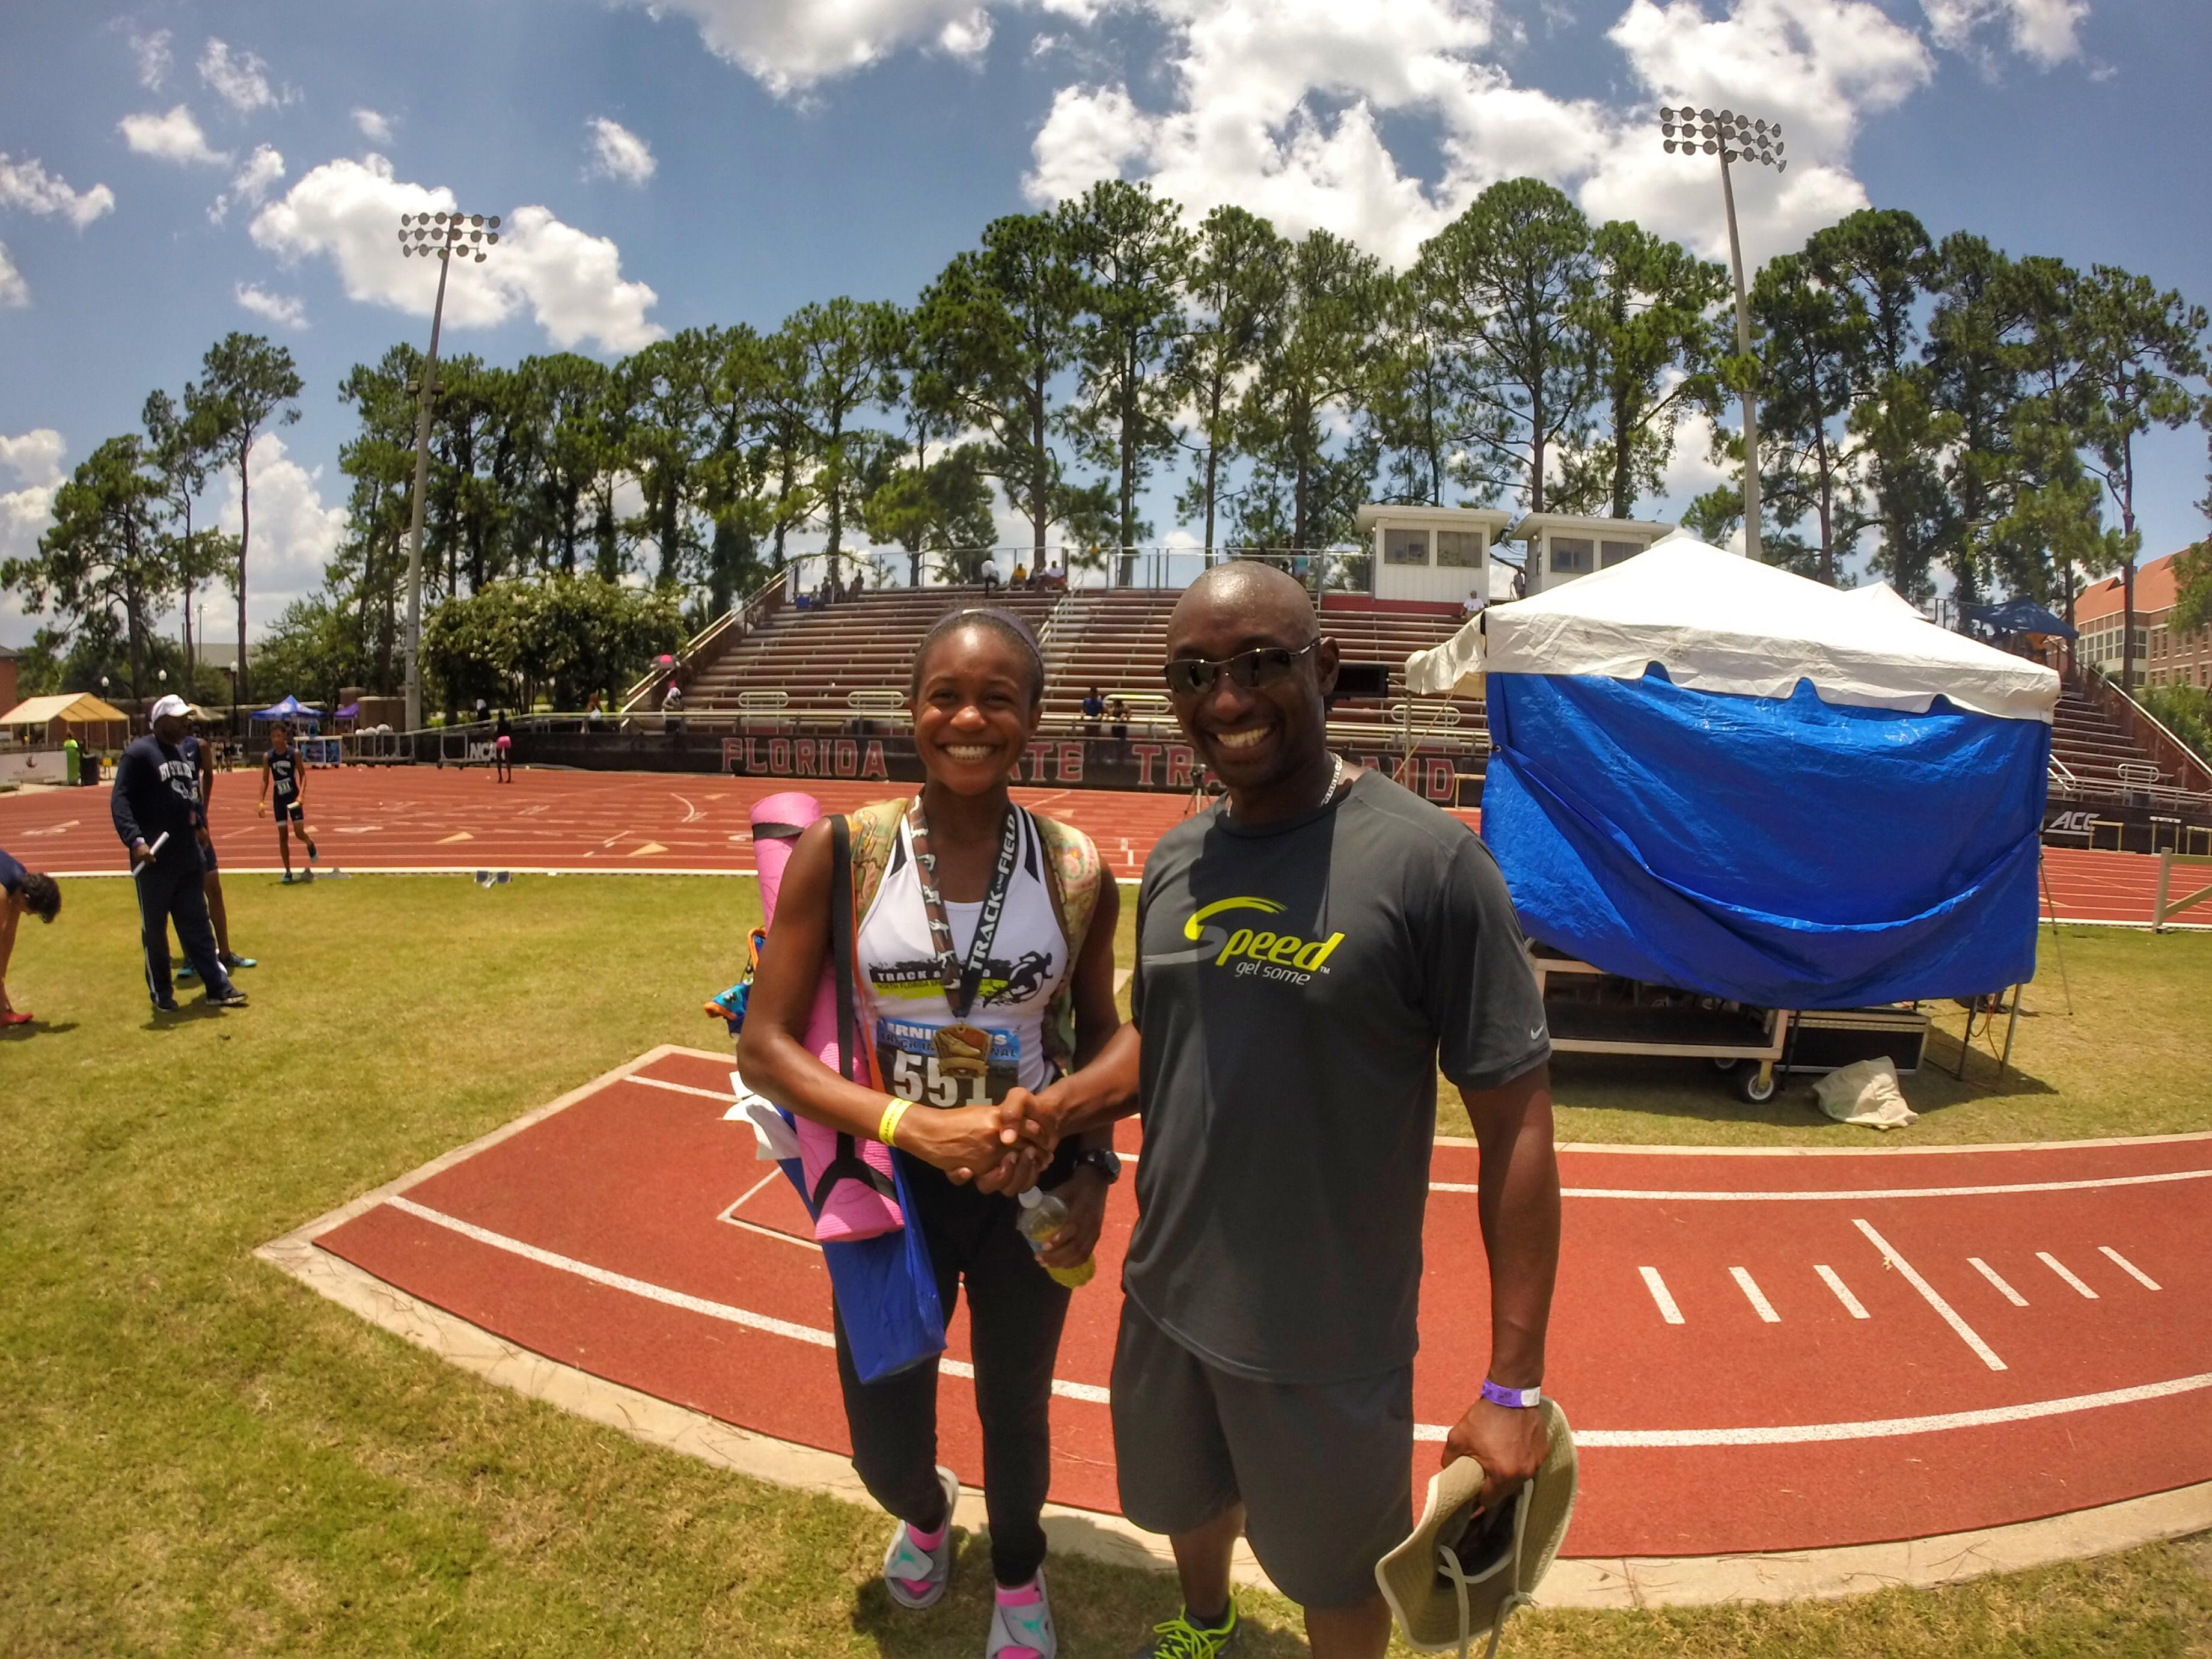 Chiles runner Jianni McDole and North Florida Speed track coach Corey Poole celebrate McDole's personal best in the 800-meter run at the Ernie Sims Track & Field Invitational.